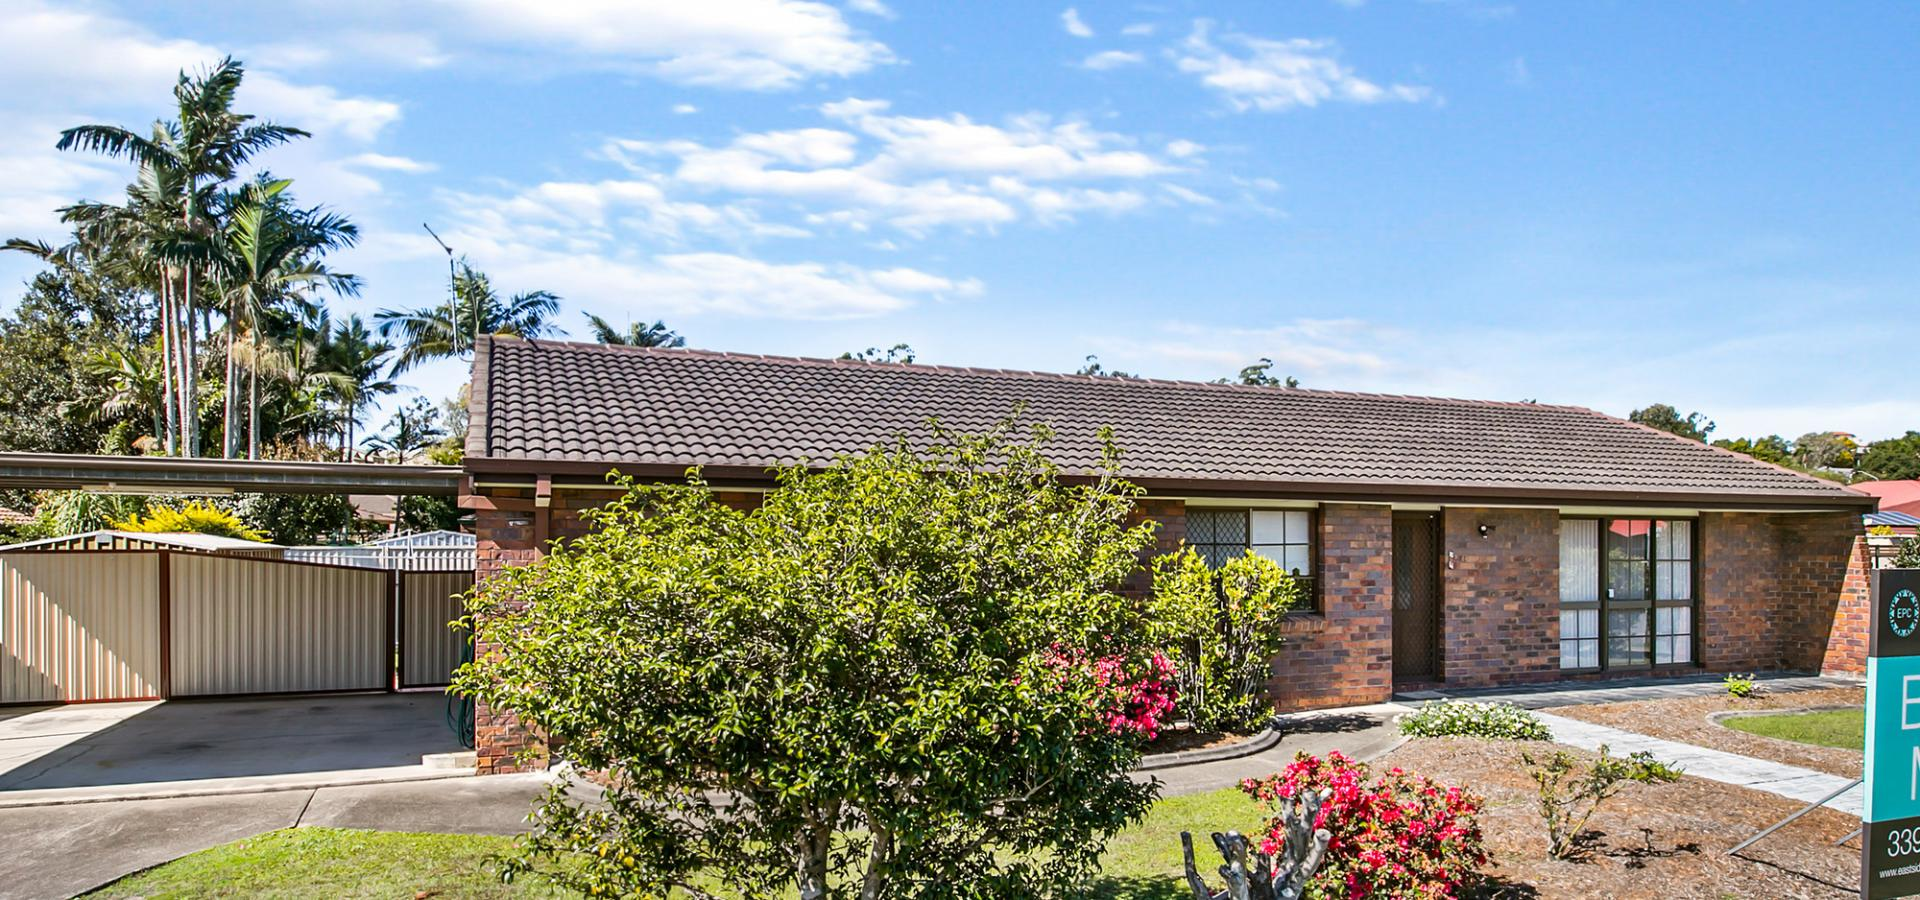 Well maintained lowset home - dual living potential